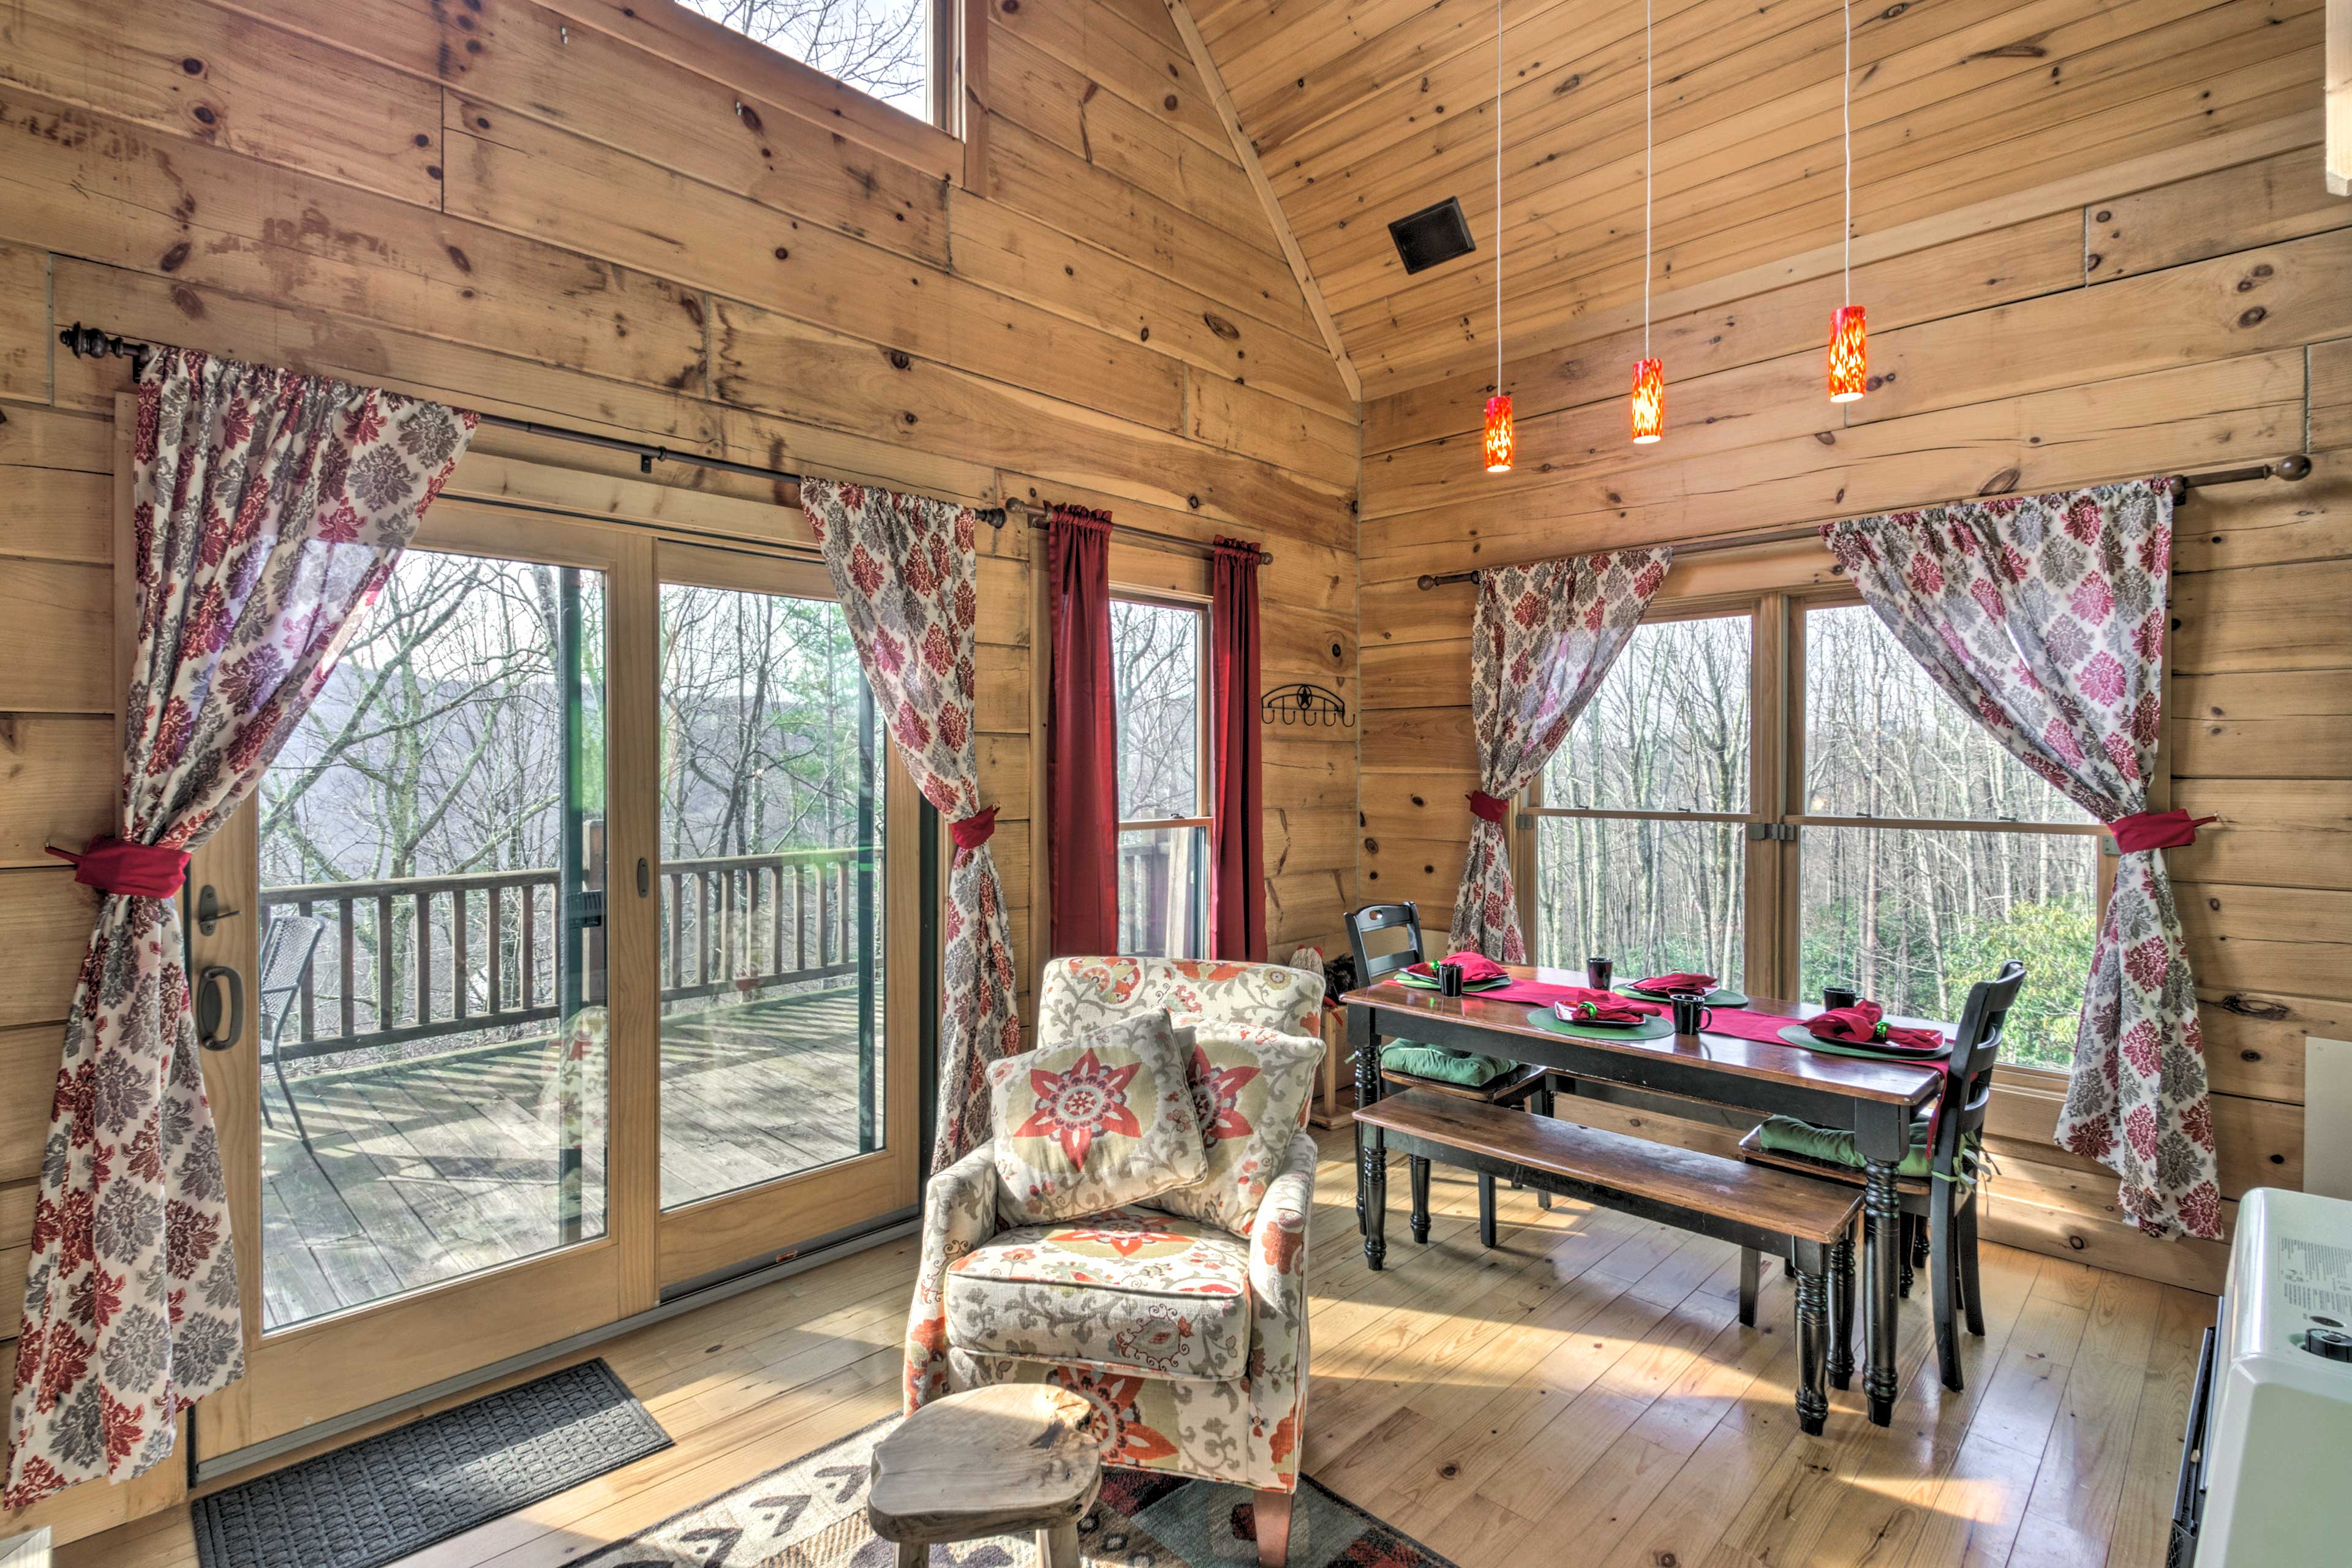 Relaxing days await at this charming Beach Mountain vacation rental cabin.